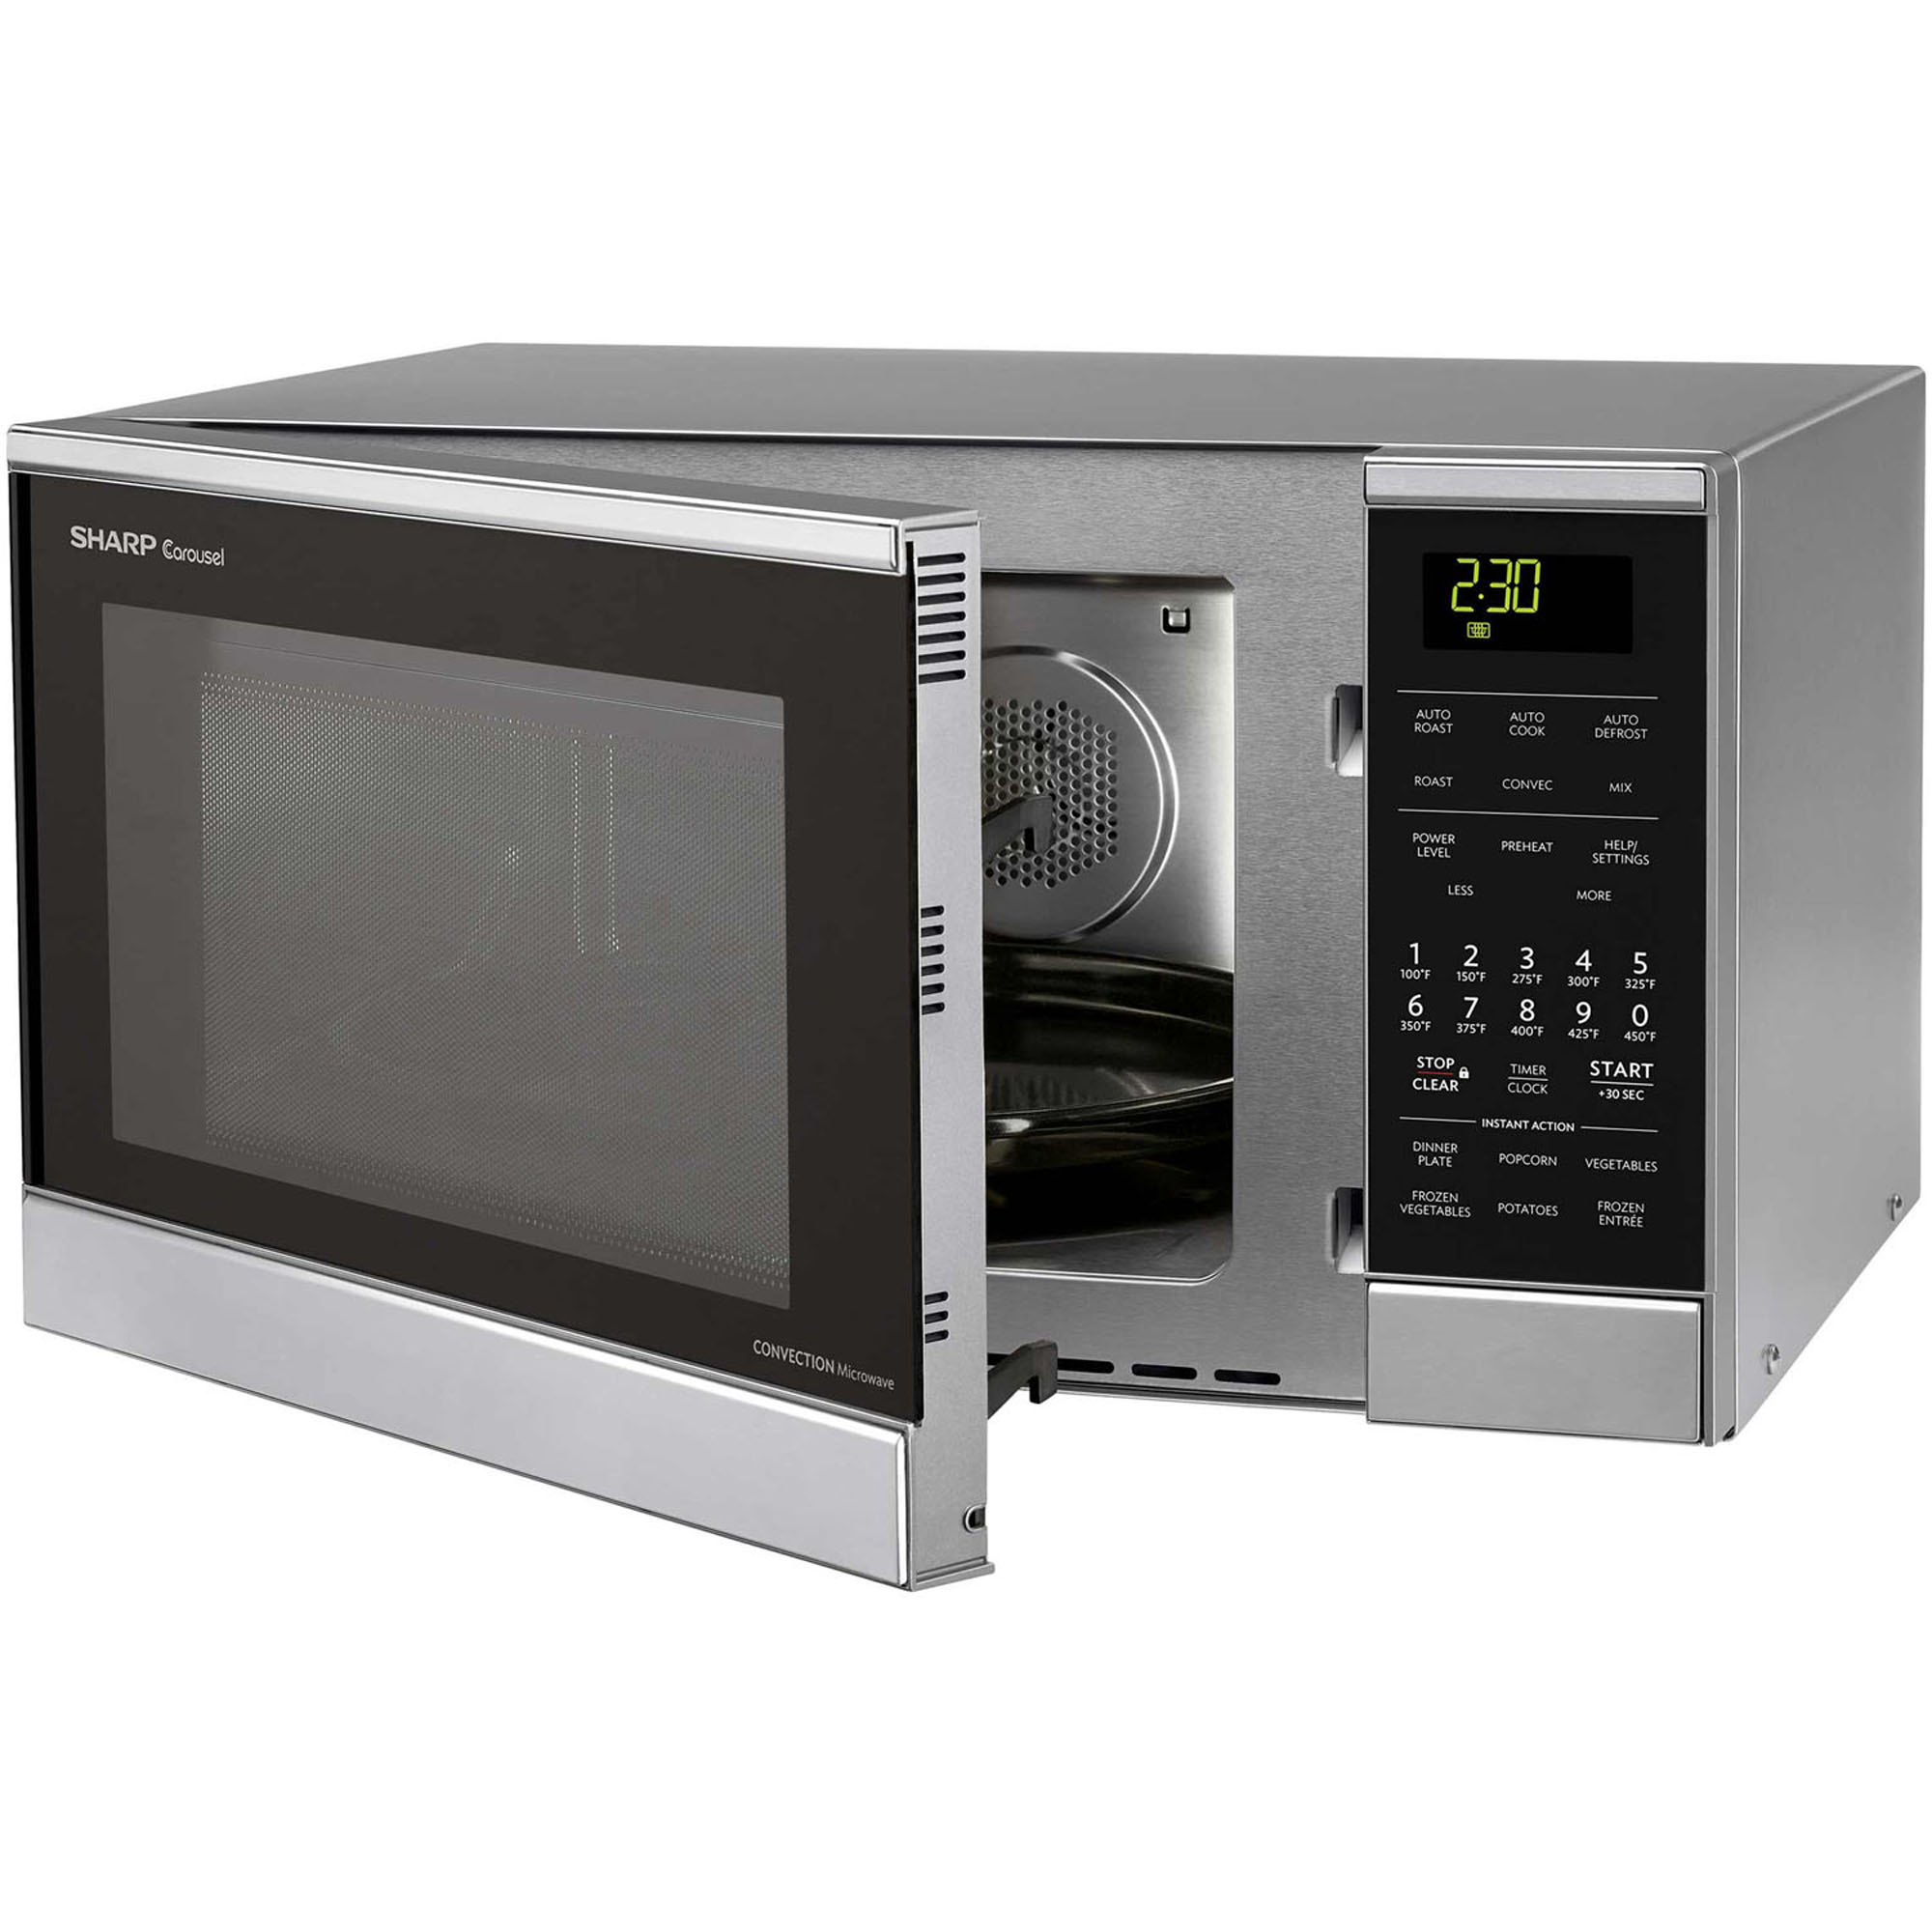 900w Countertop Convection Microwave Oven Stainless Steel